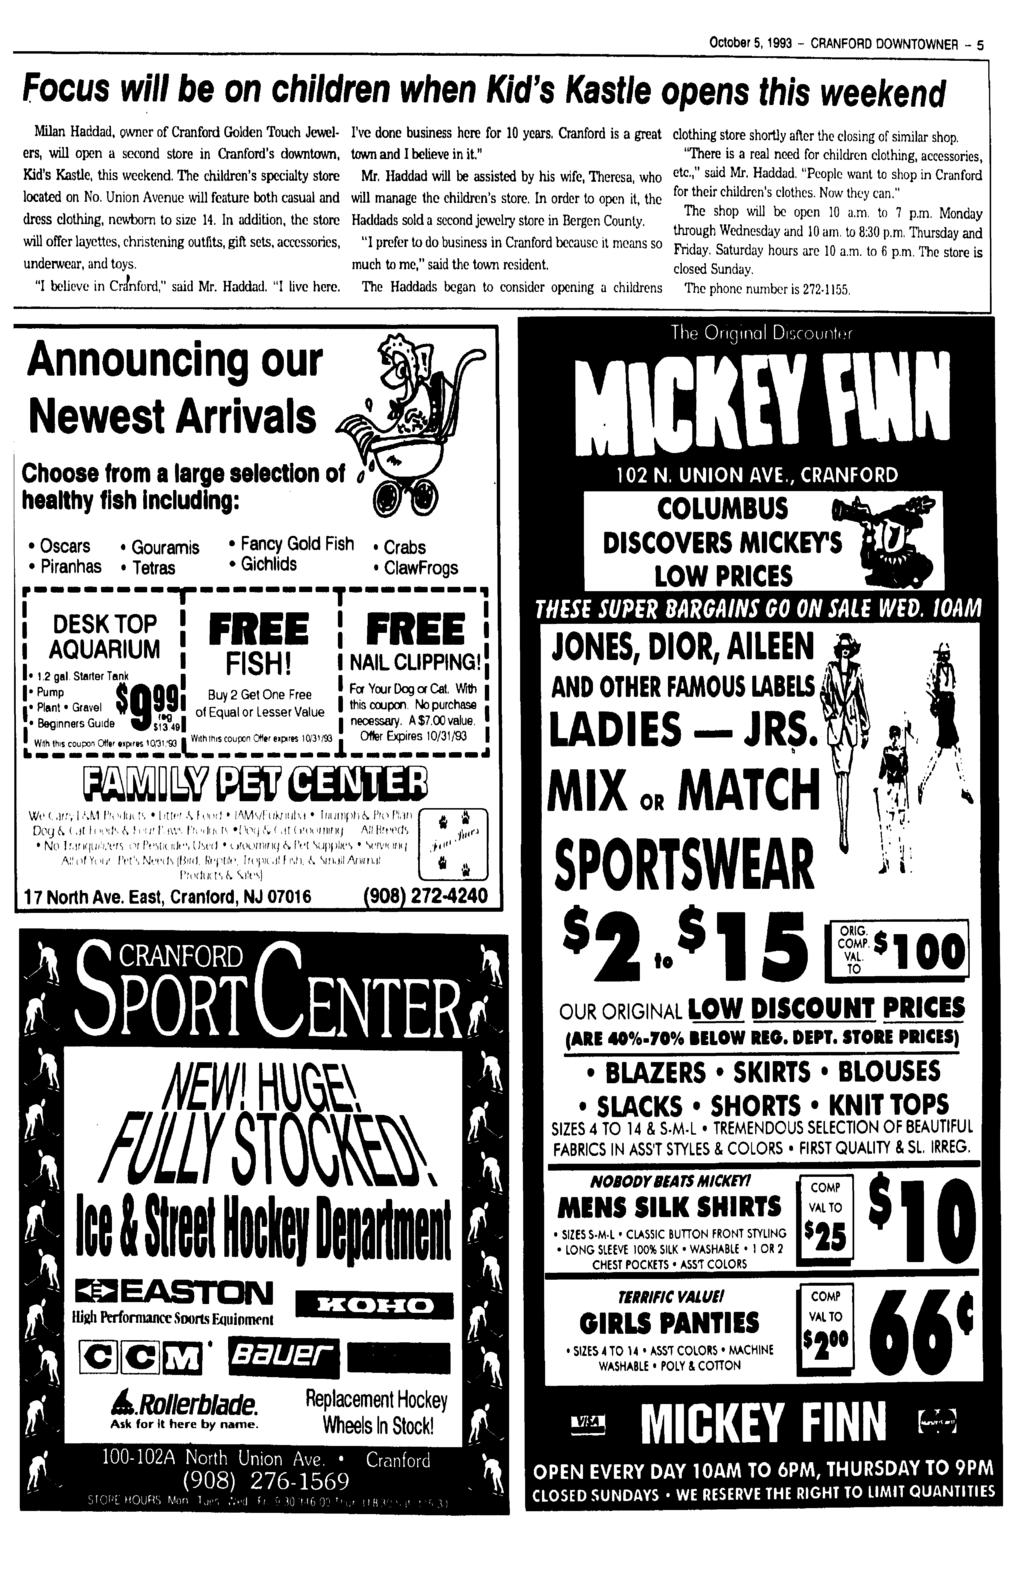 October 5,1993 - CRANFORD DOWNTOWNER - 5 Focus will be on children when Kid's Kastle opens this weekend Milan Haddad, owner of Cranford Golden Touch Jewelers, will open a second store in Cranford's